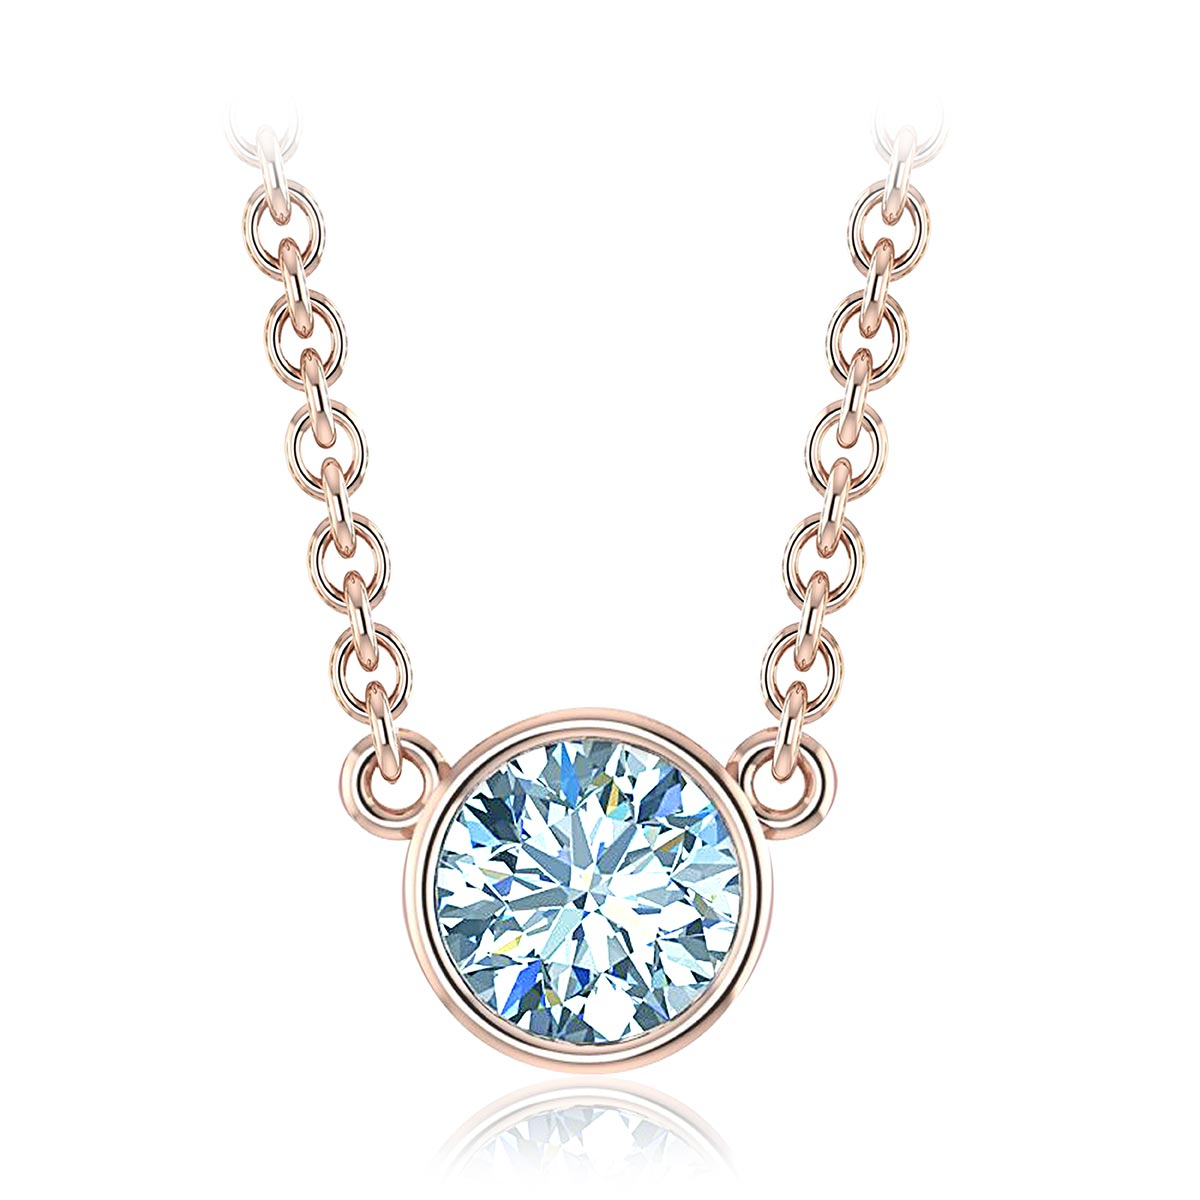 Venatici Diamond Necklace (1 CT. TW.)